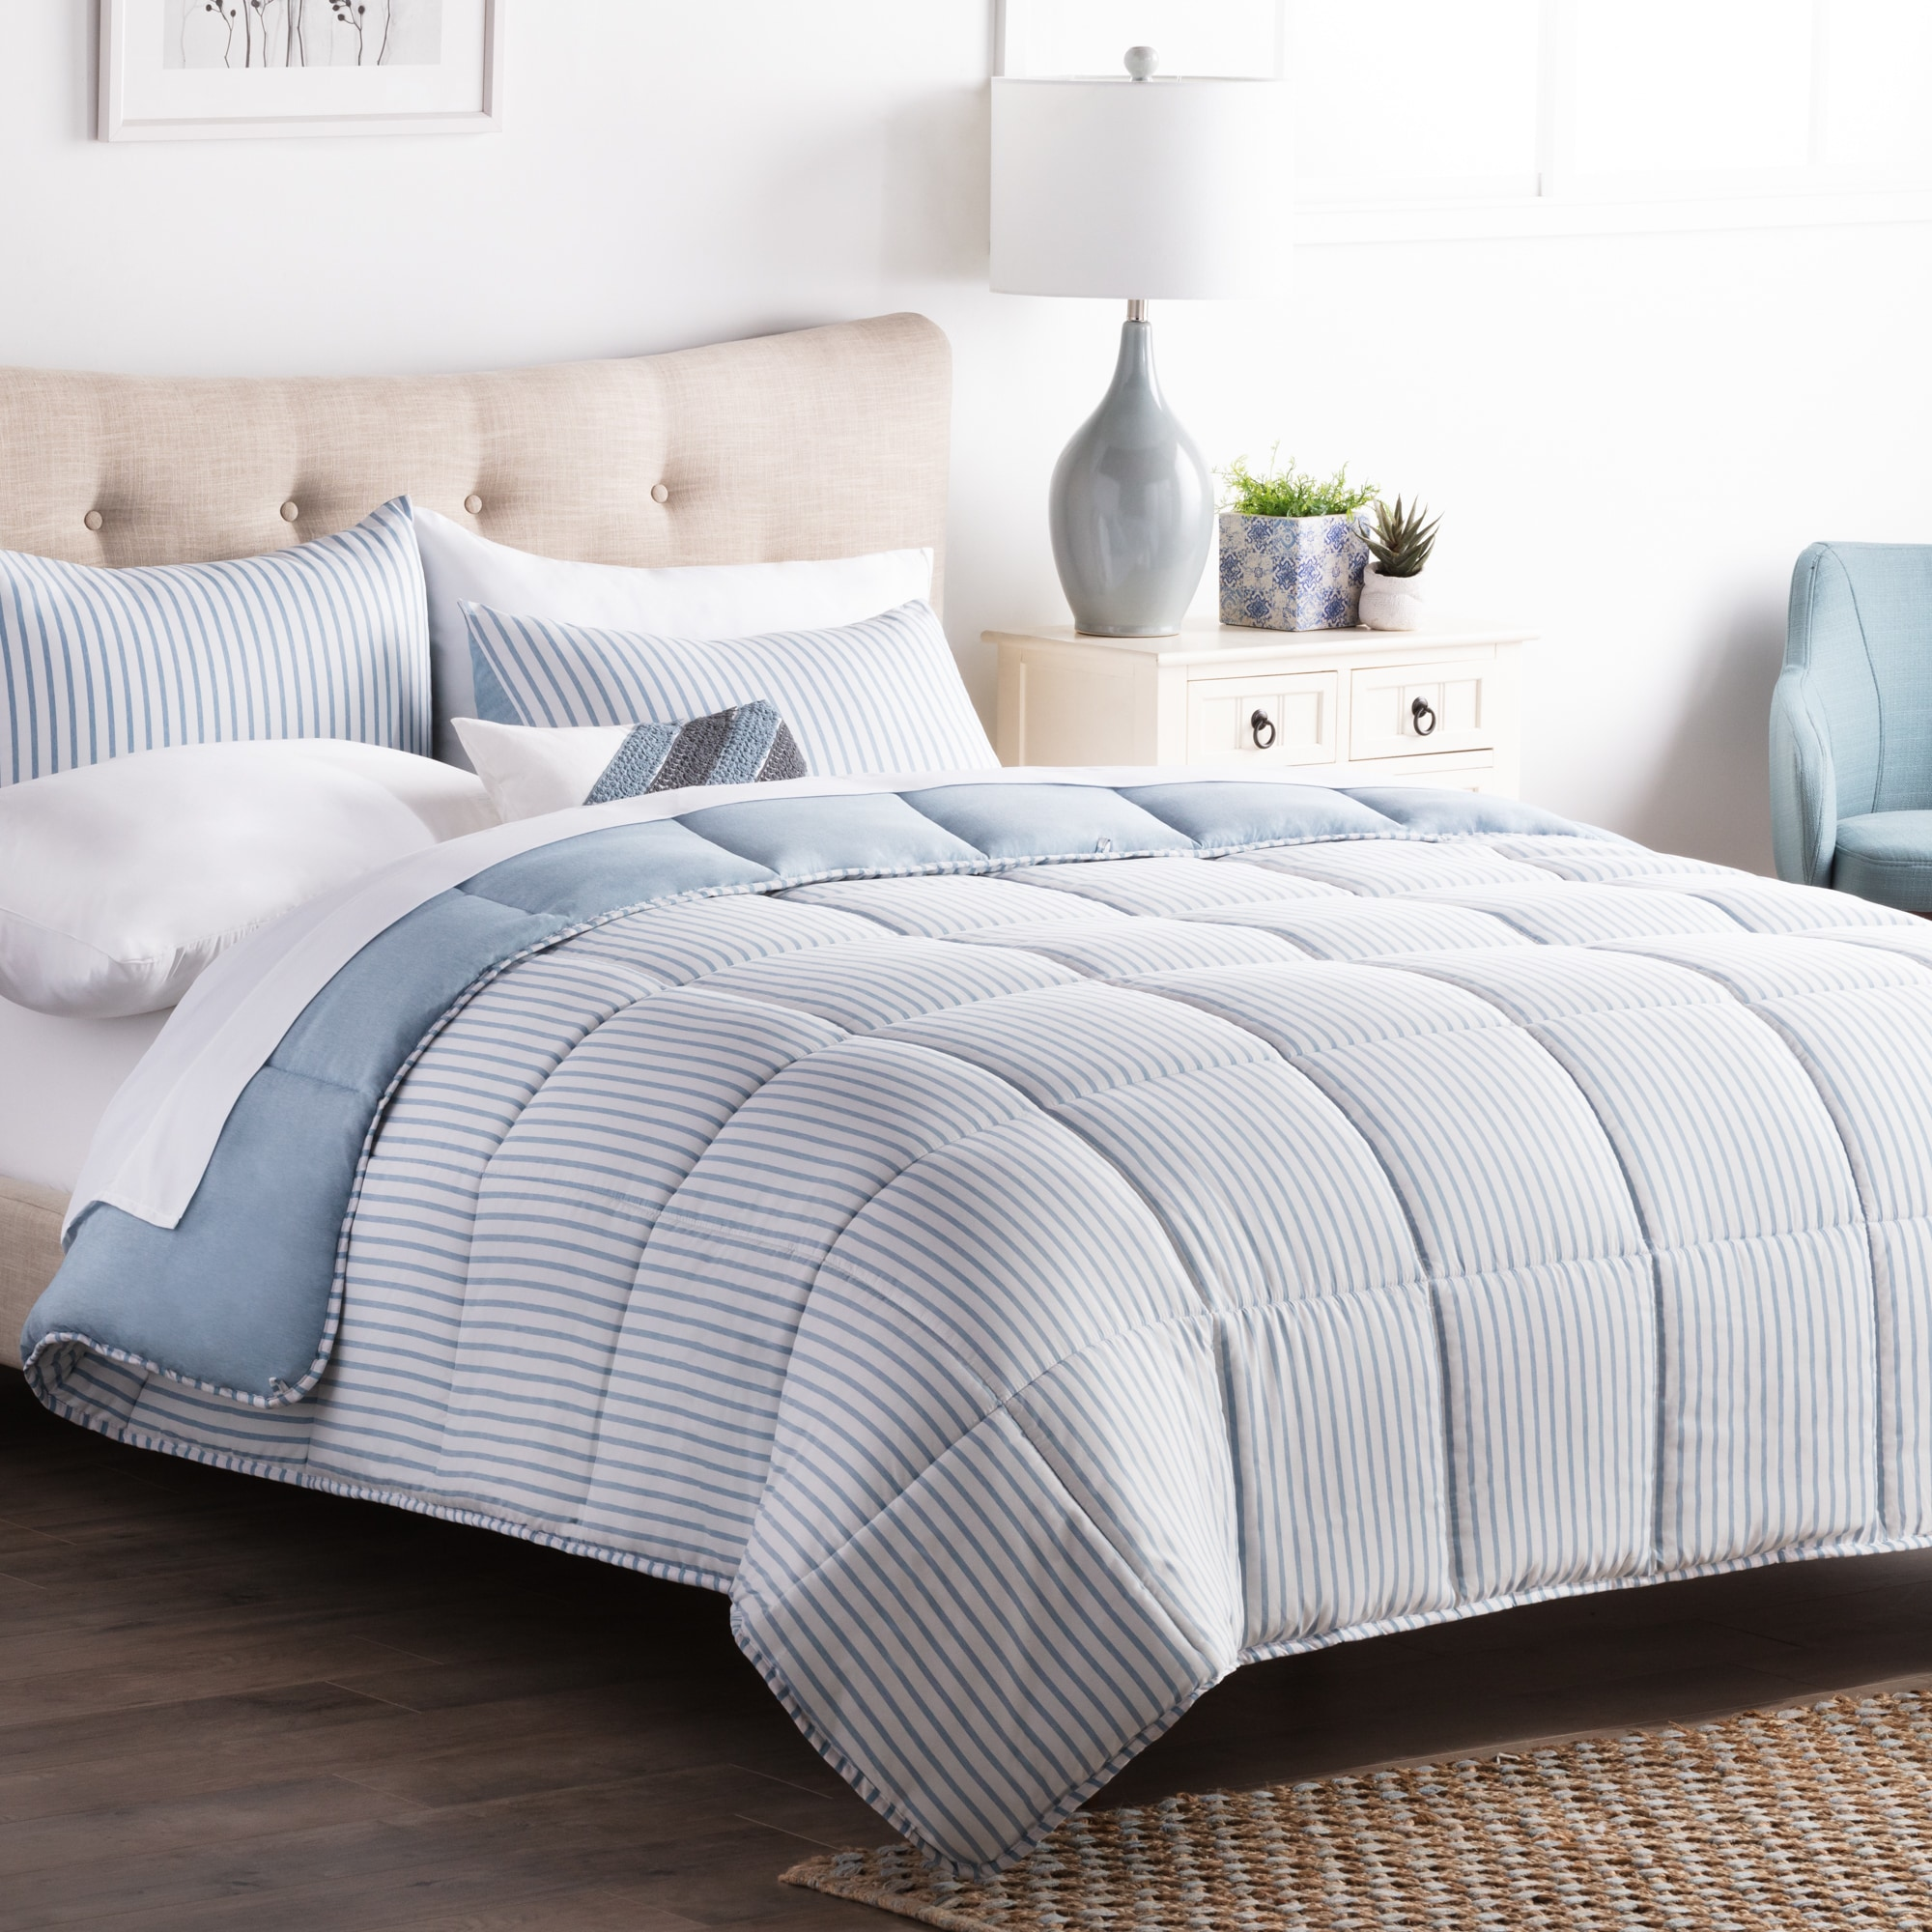 Charcoal Bedding Sets Comforter Sets Find Great Bedding Deals Shopping At Overstock